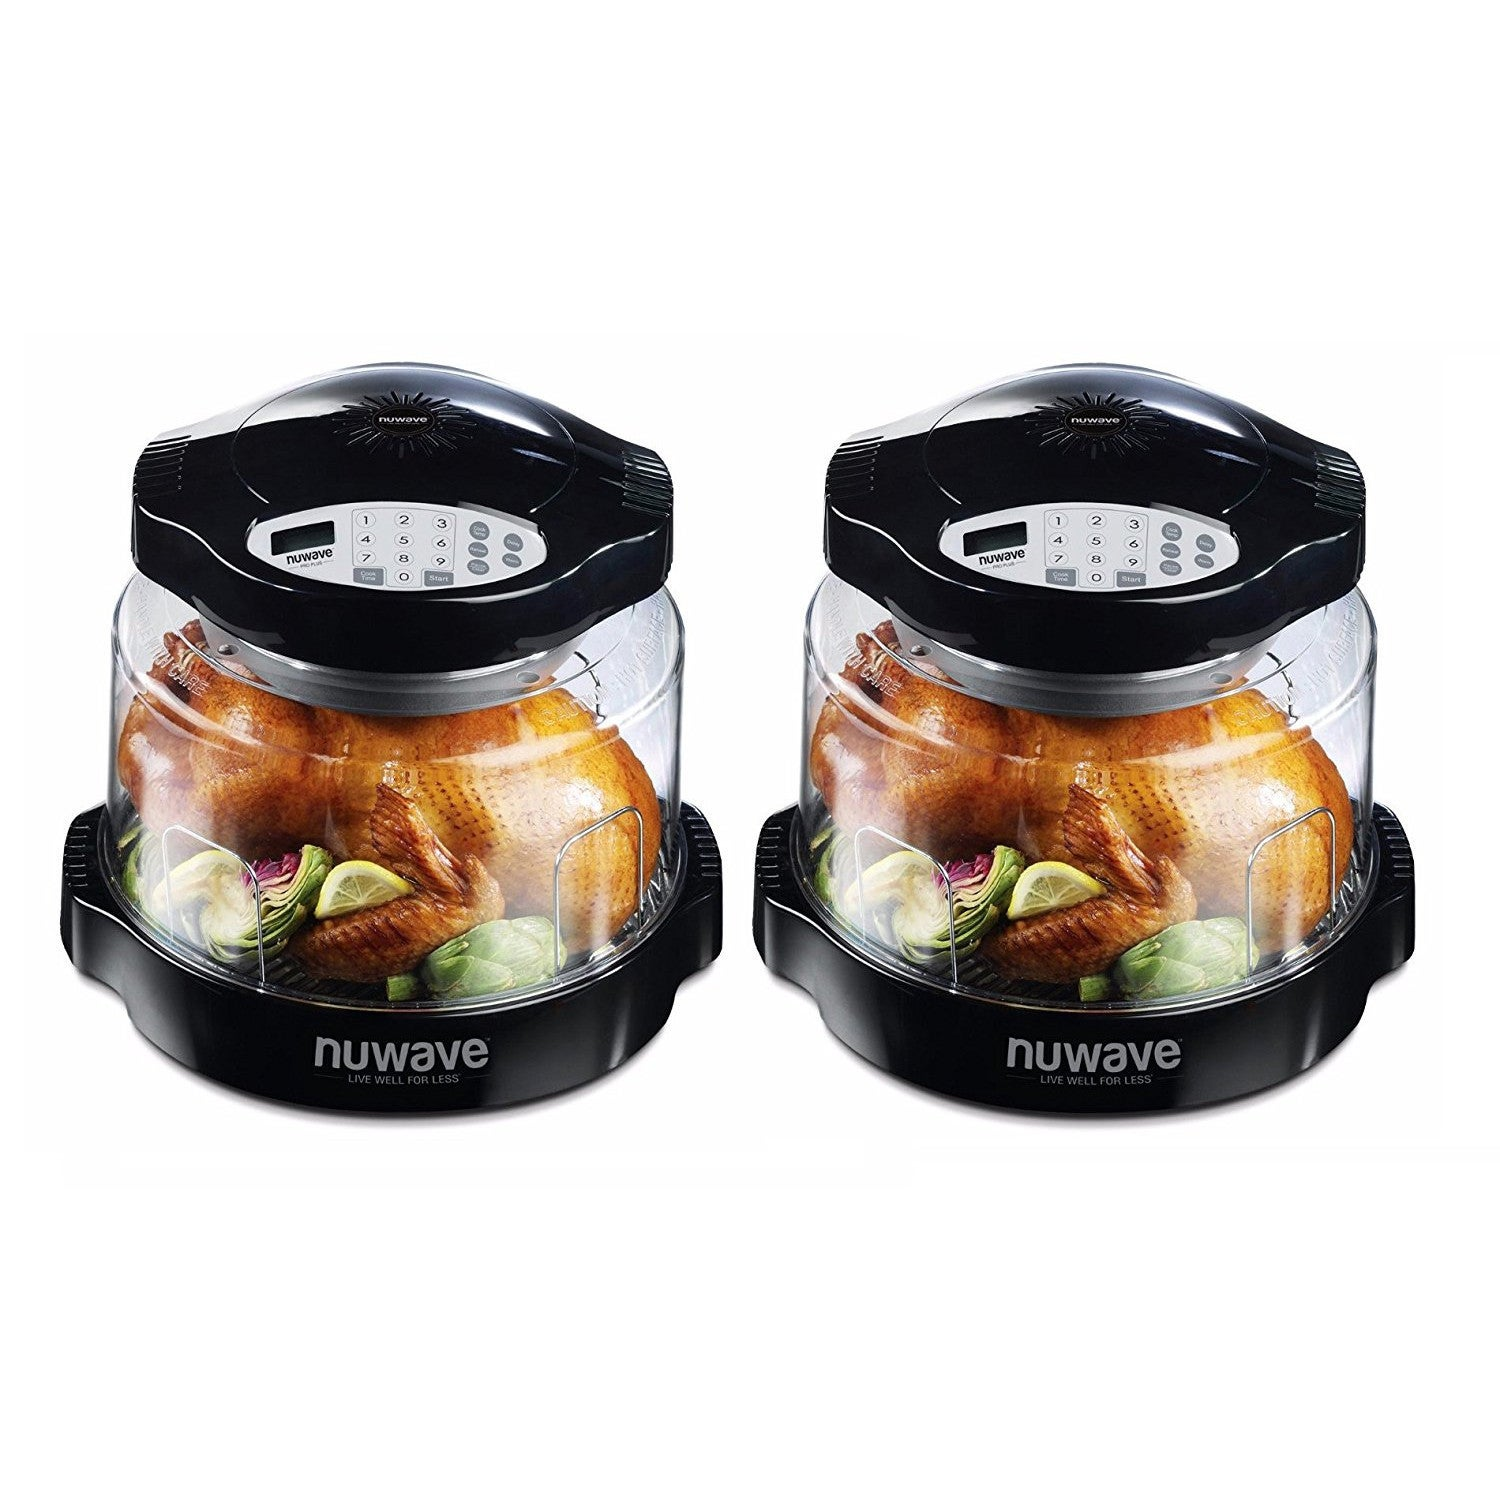 Nu-Wave Oven Pro Plus with Black Digital Panel (2-Pack) (...